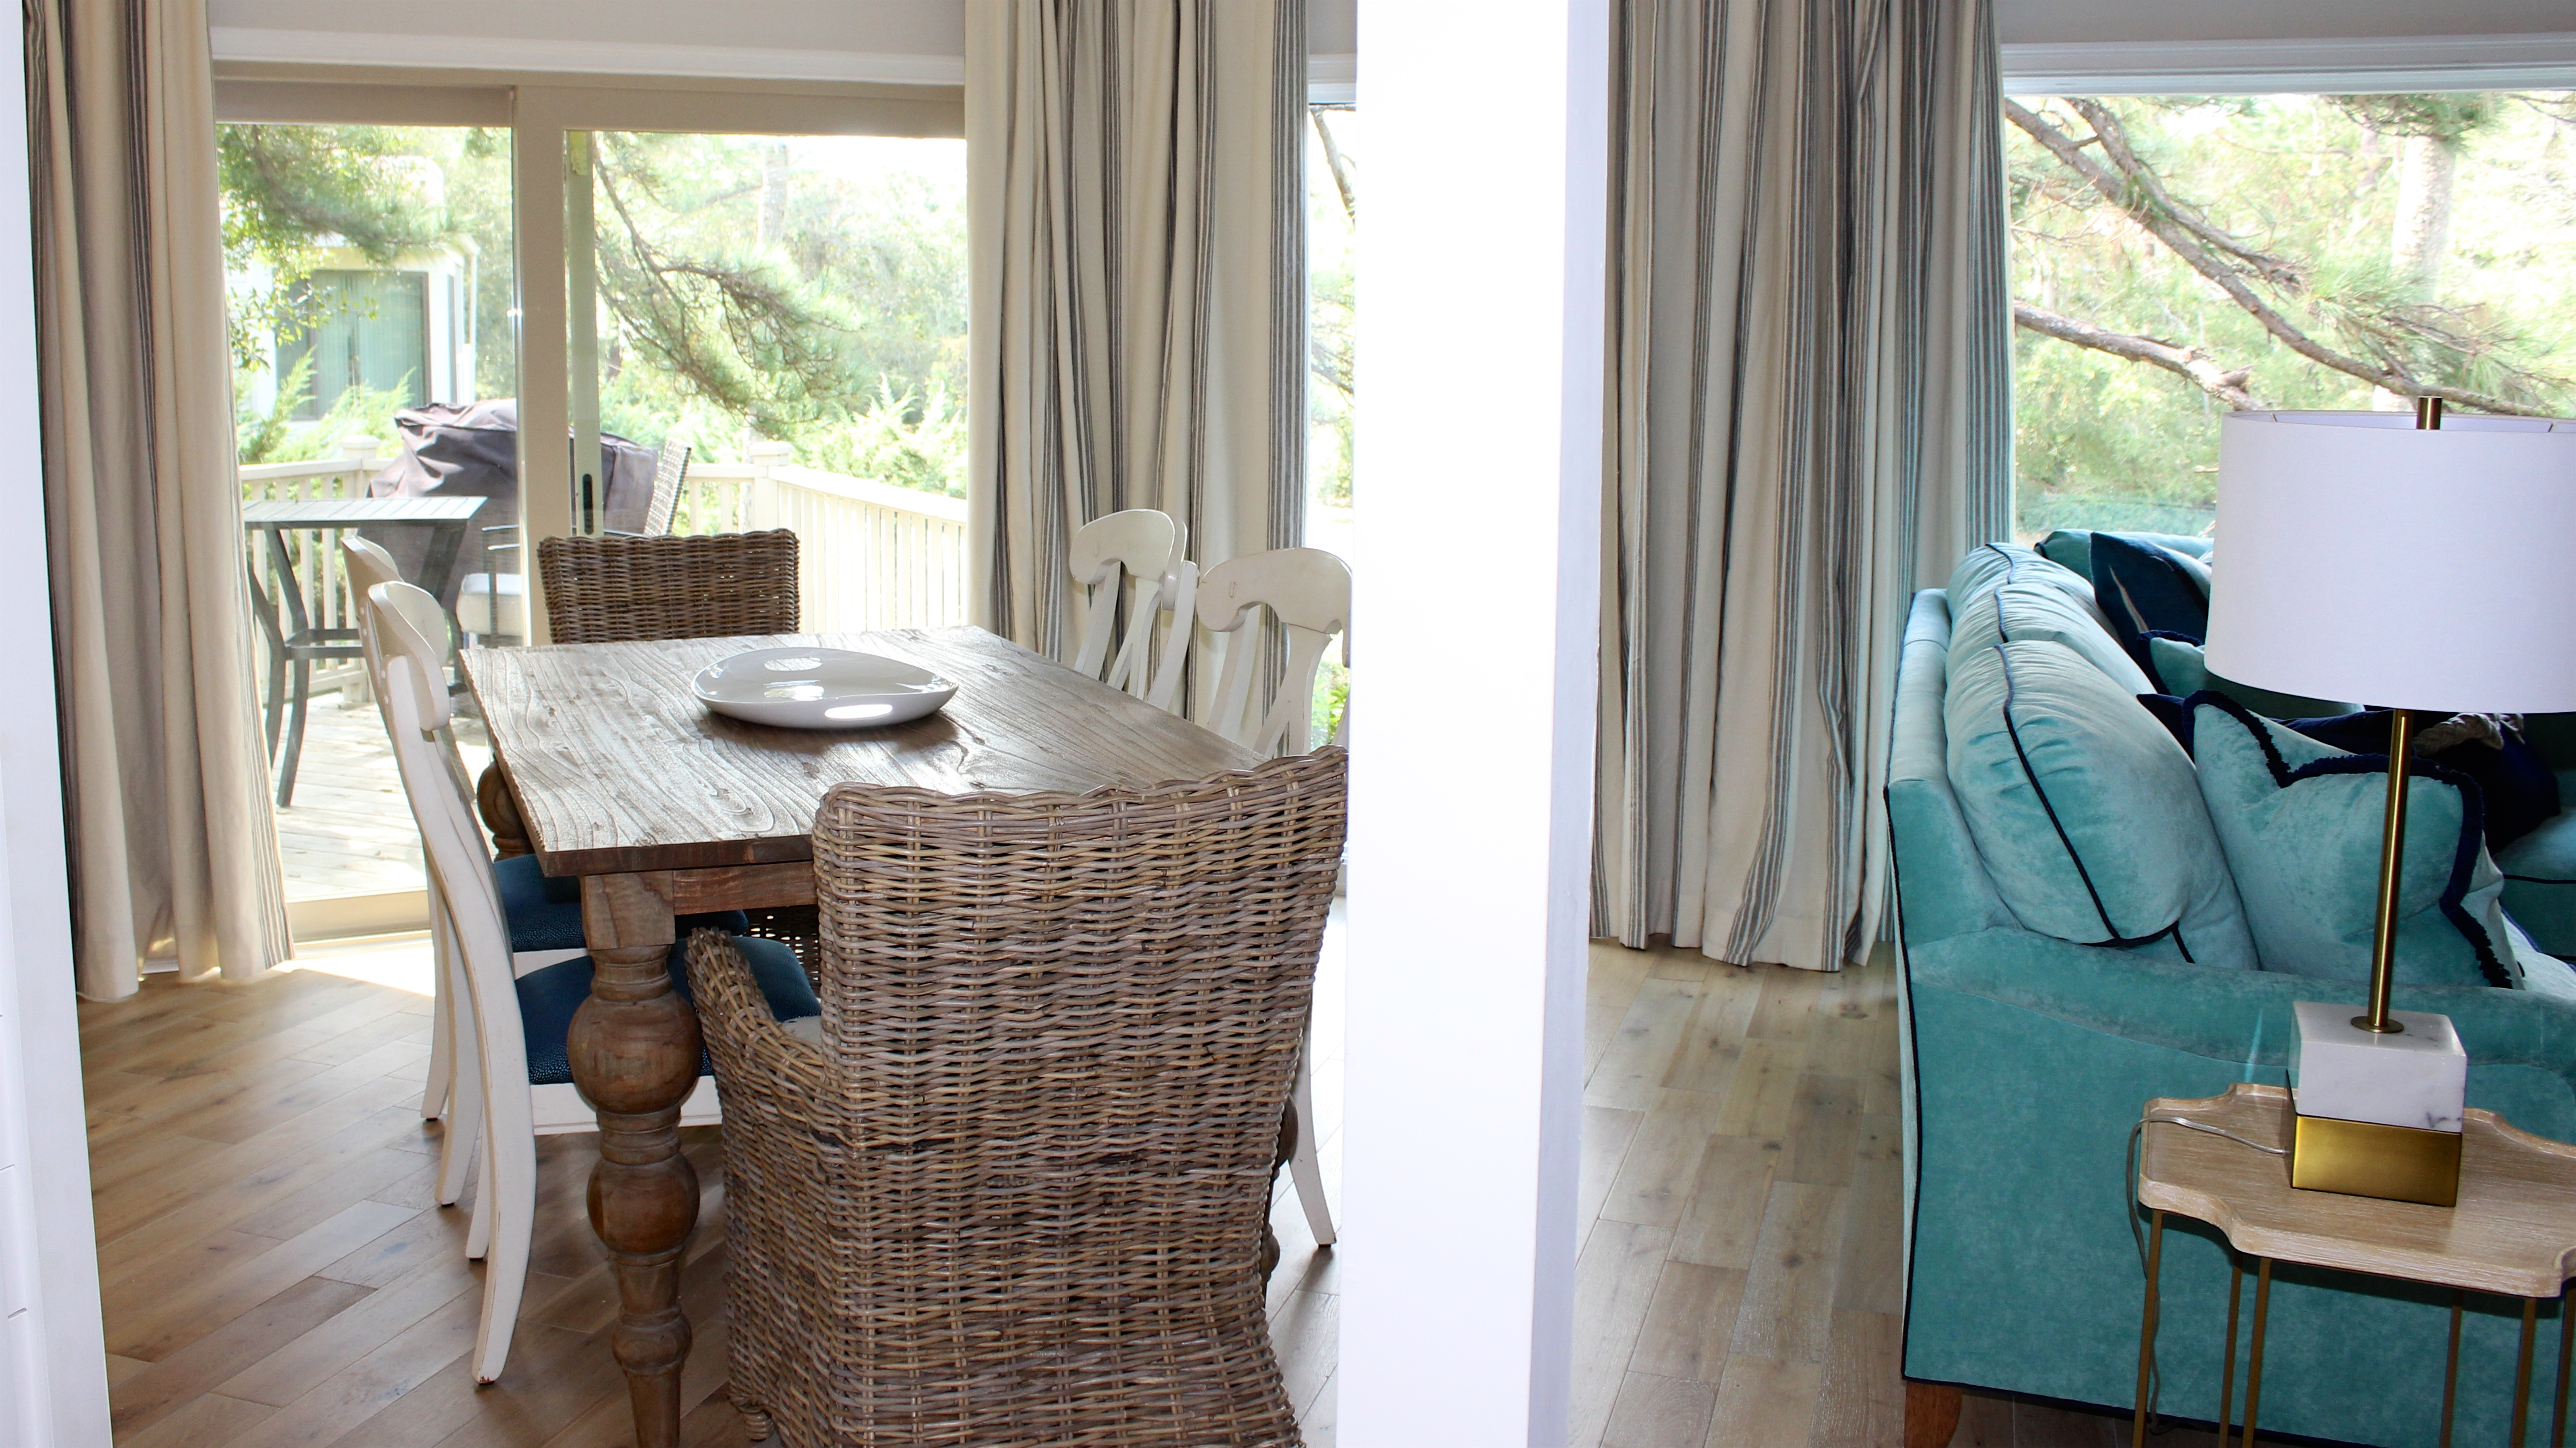 The dining area features a farm table with seating for six.